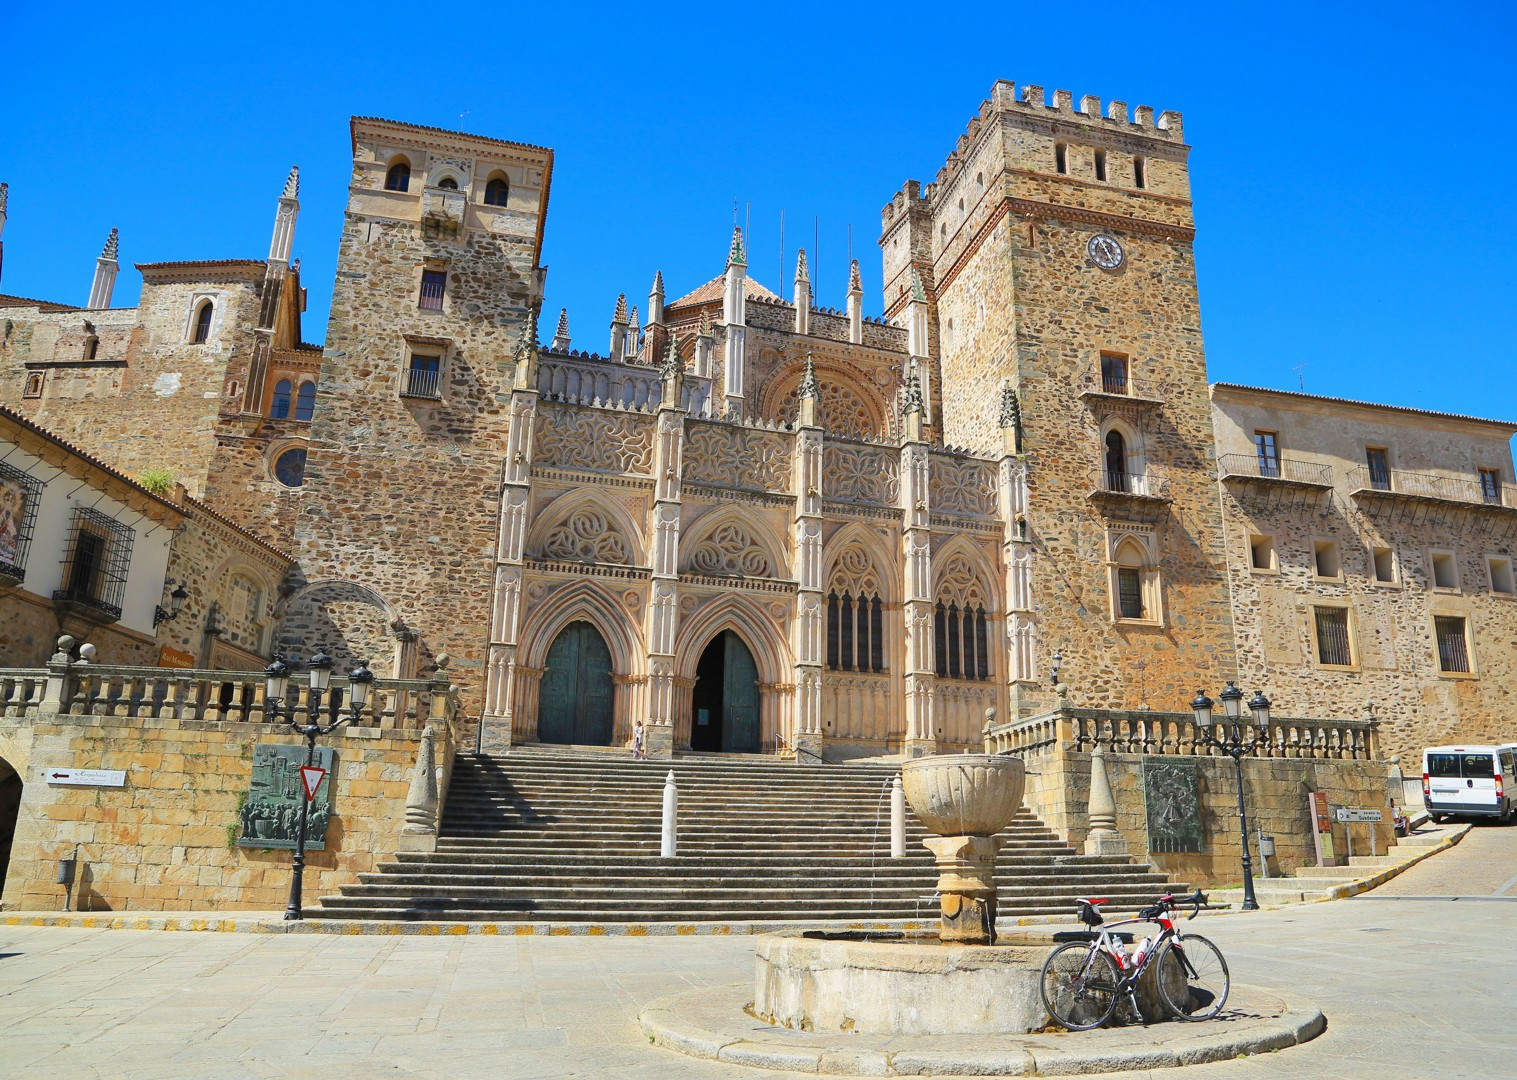 visit-guadaloupe-road-cycling-holiday-spain.jpg - NEW! Spain - Basque Country to Andalucia - 21 Day - Road Cycling